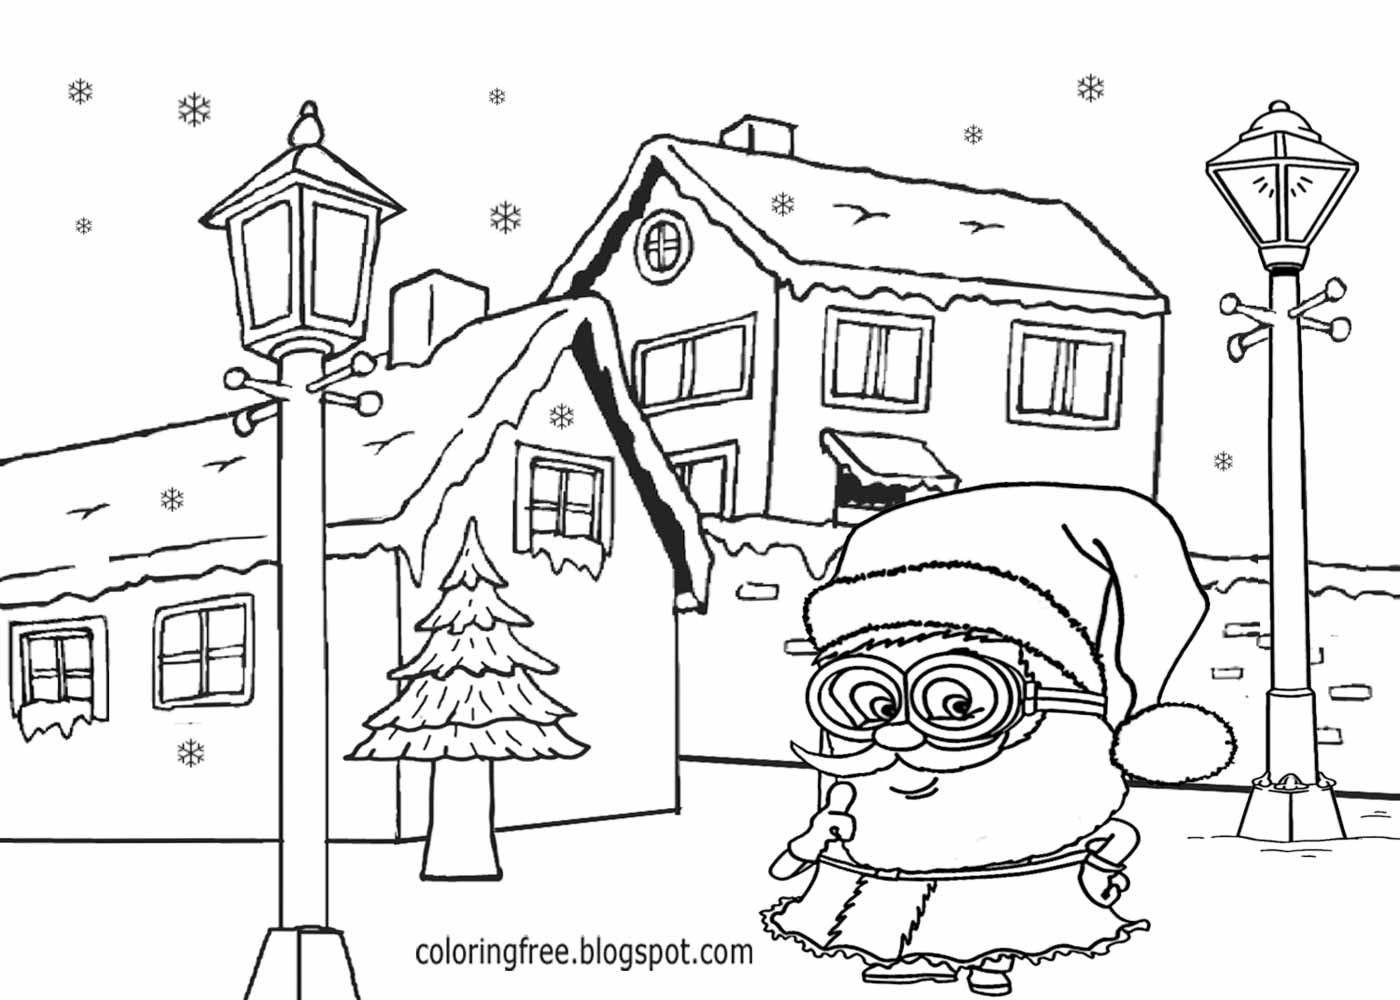 coloring minion pages with santa - photo#15